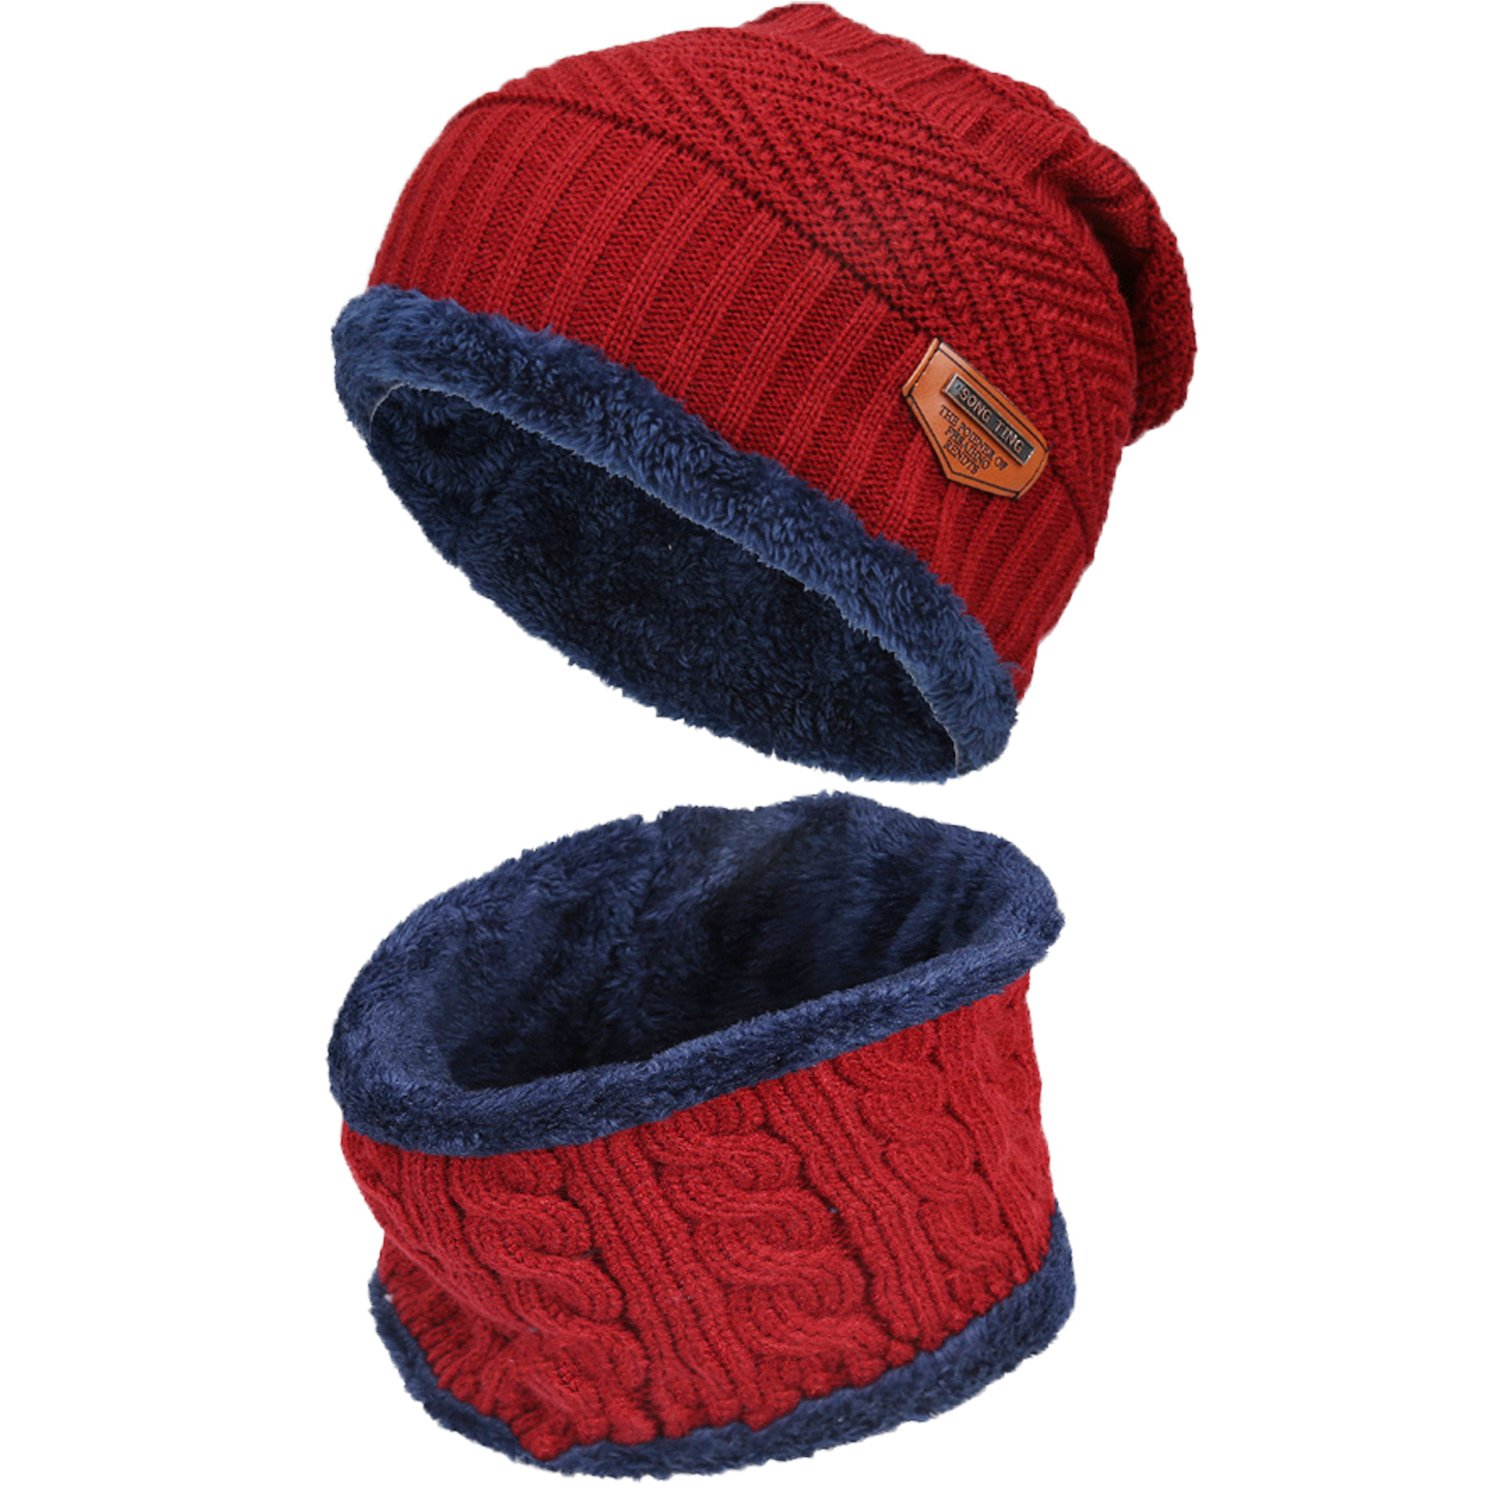 Bequemer Laden Kids Winter Beanie Hat and Scarf Set Warm Knit Beanie Cap and Circle Scarf with Fleece Lining for Kids Boys Girls, 2-Pieces